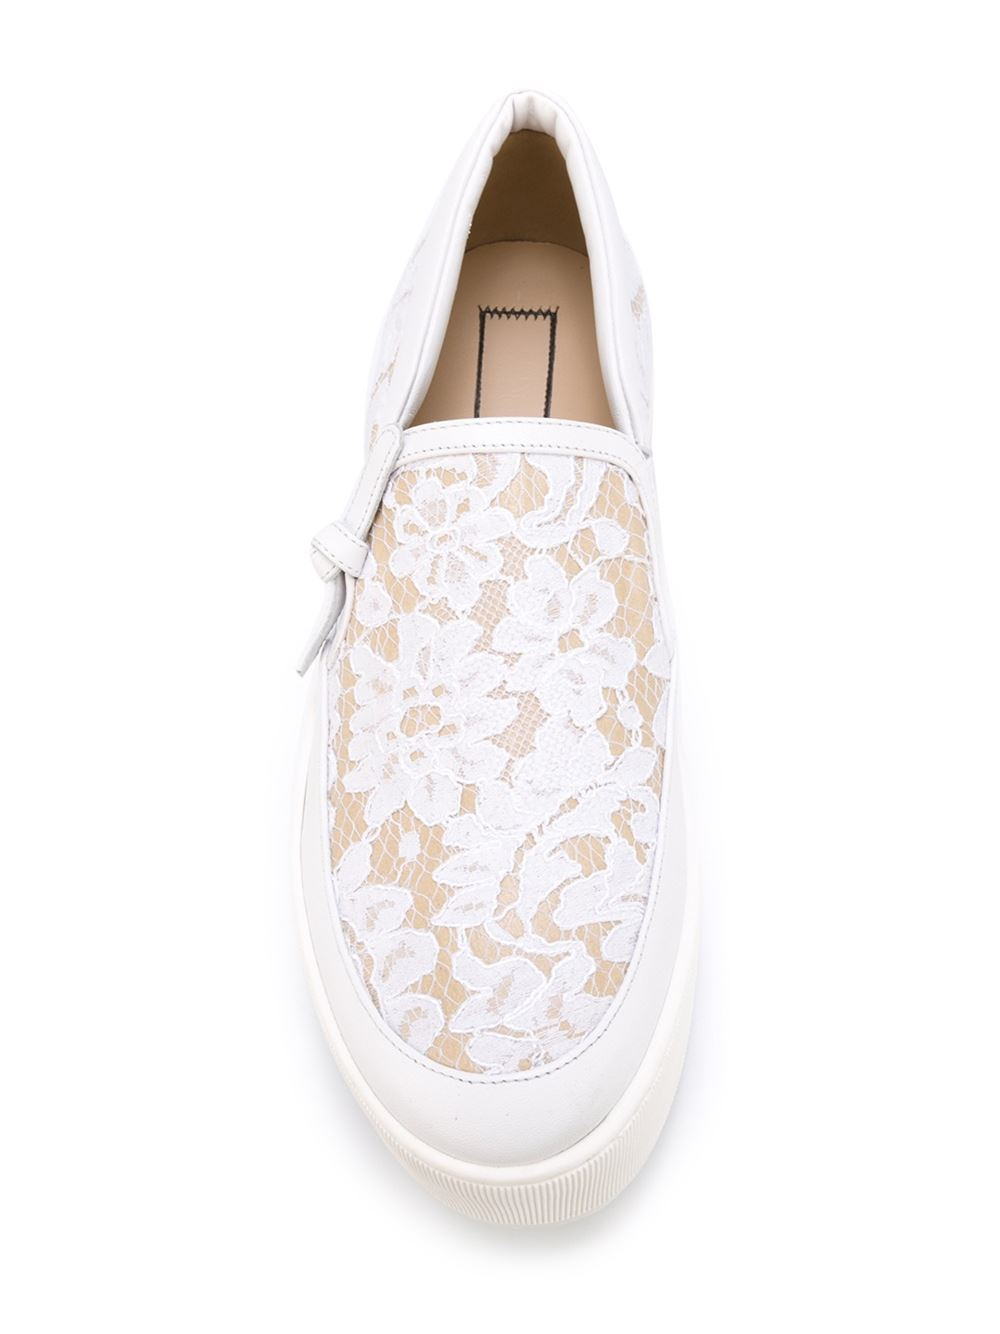 N°21 No21 Lace Slip-on Sneakers in White